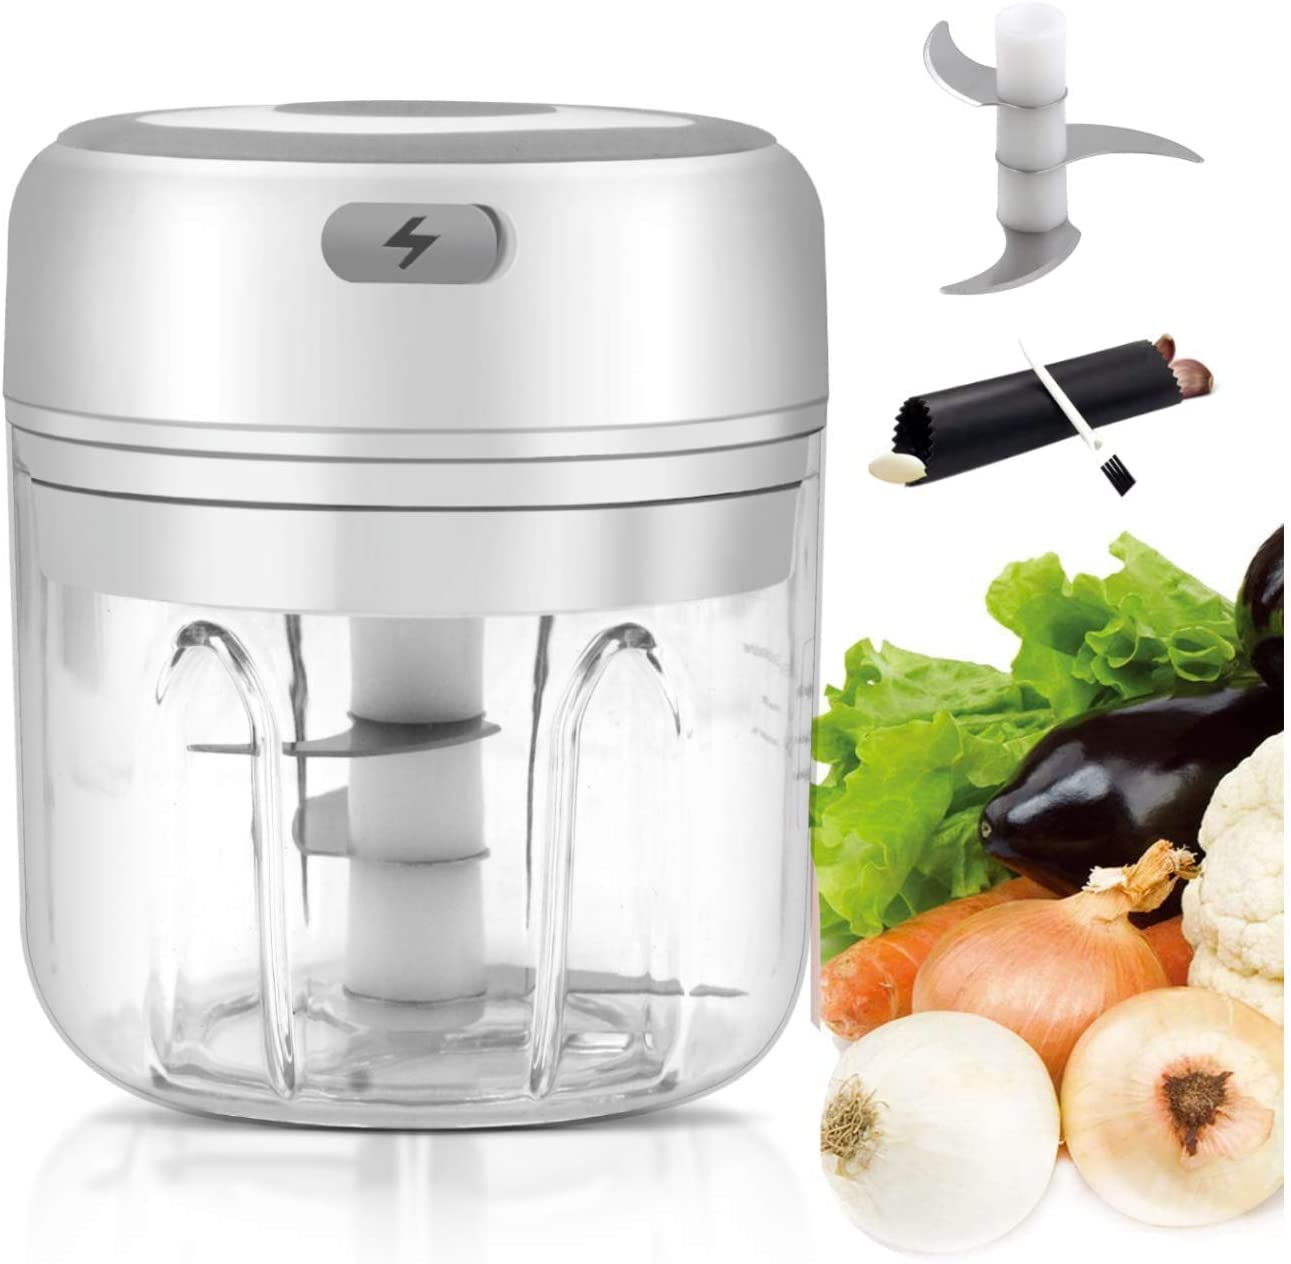 Mini Garlic Chopper, mincer chopper, Electric Food Dicers, Food Slicer Crusher, Wireless, Rechargeable & Portable for Garlic/Chili/Vegetables/Onions/Pepper/Ginger/meat